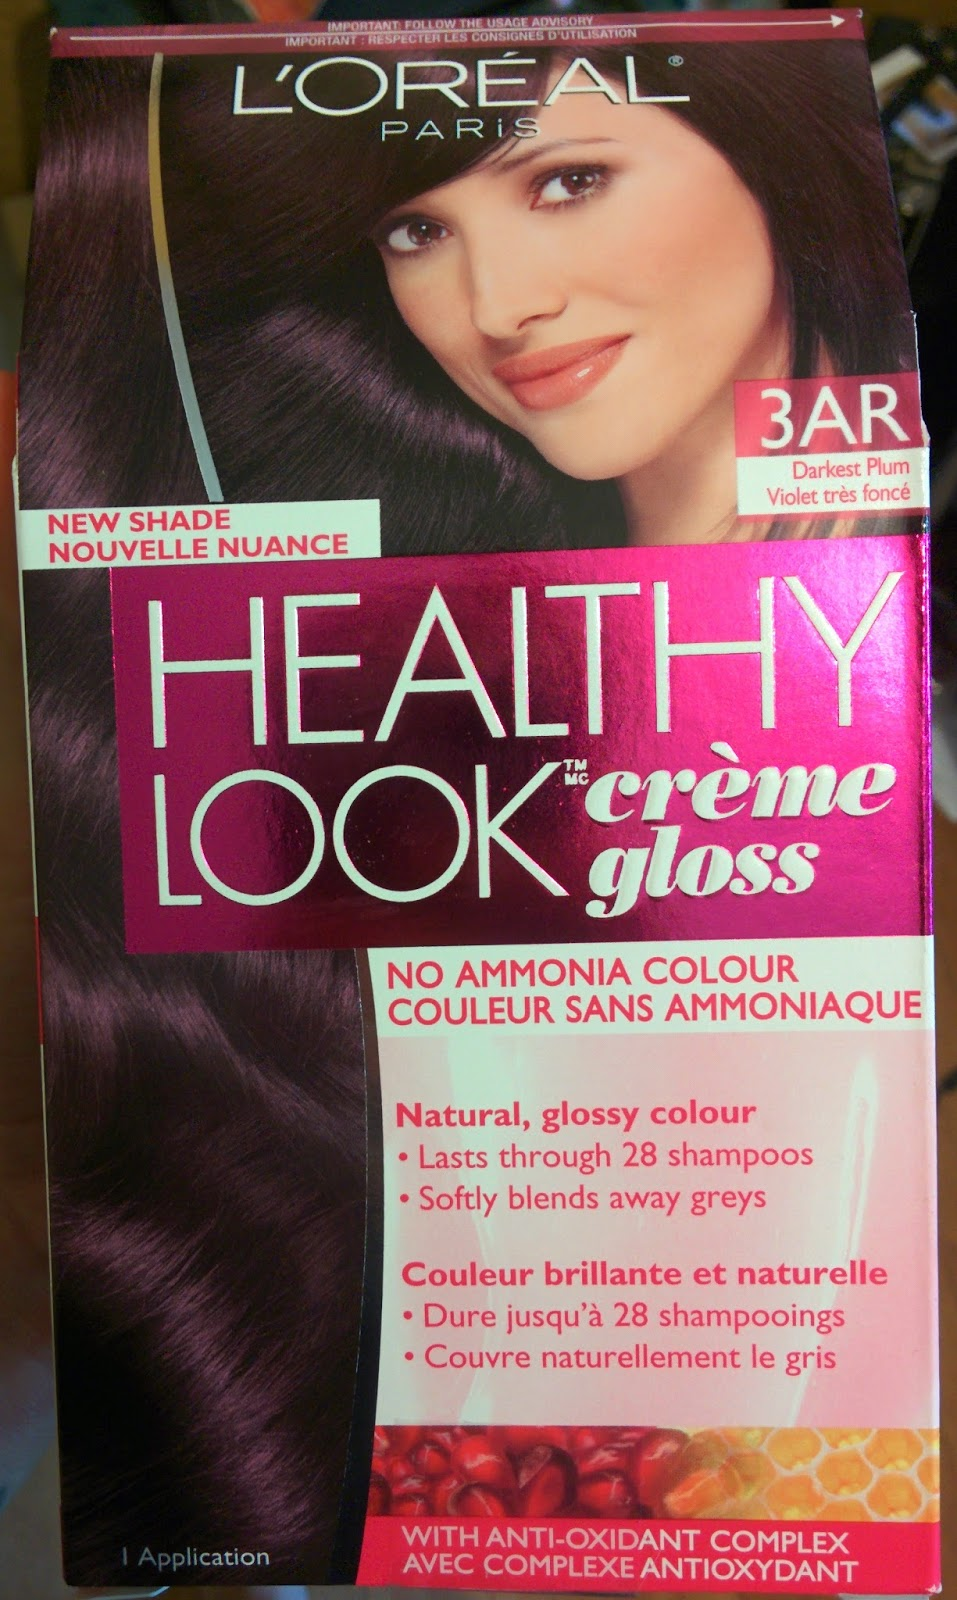 Put Your Make Up On Loreal Paris Healthy Look Creme Gloss Review